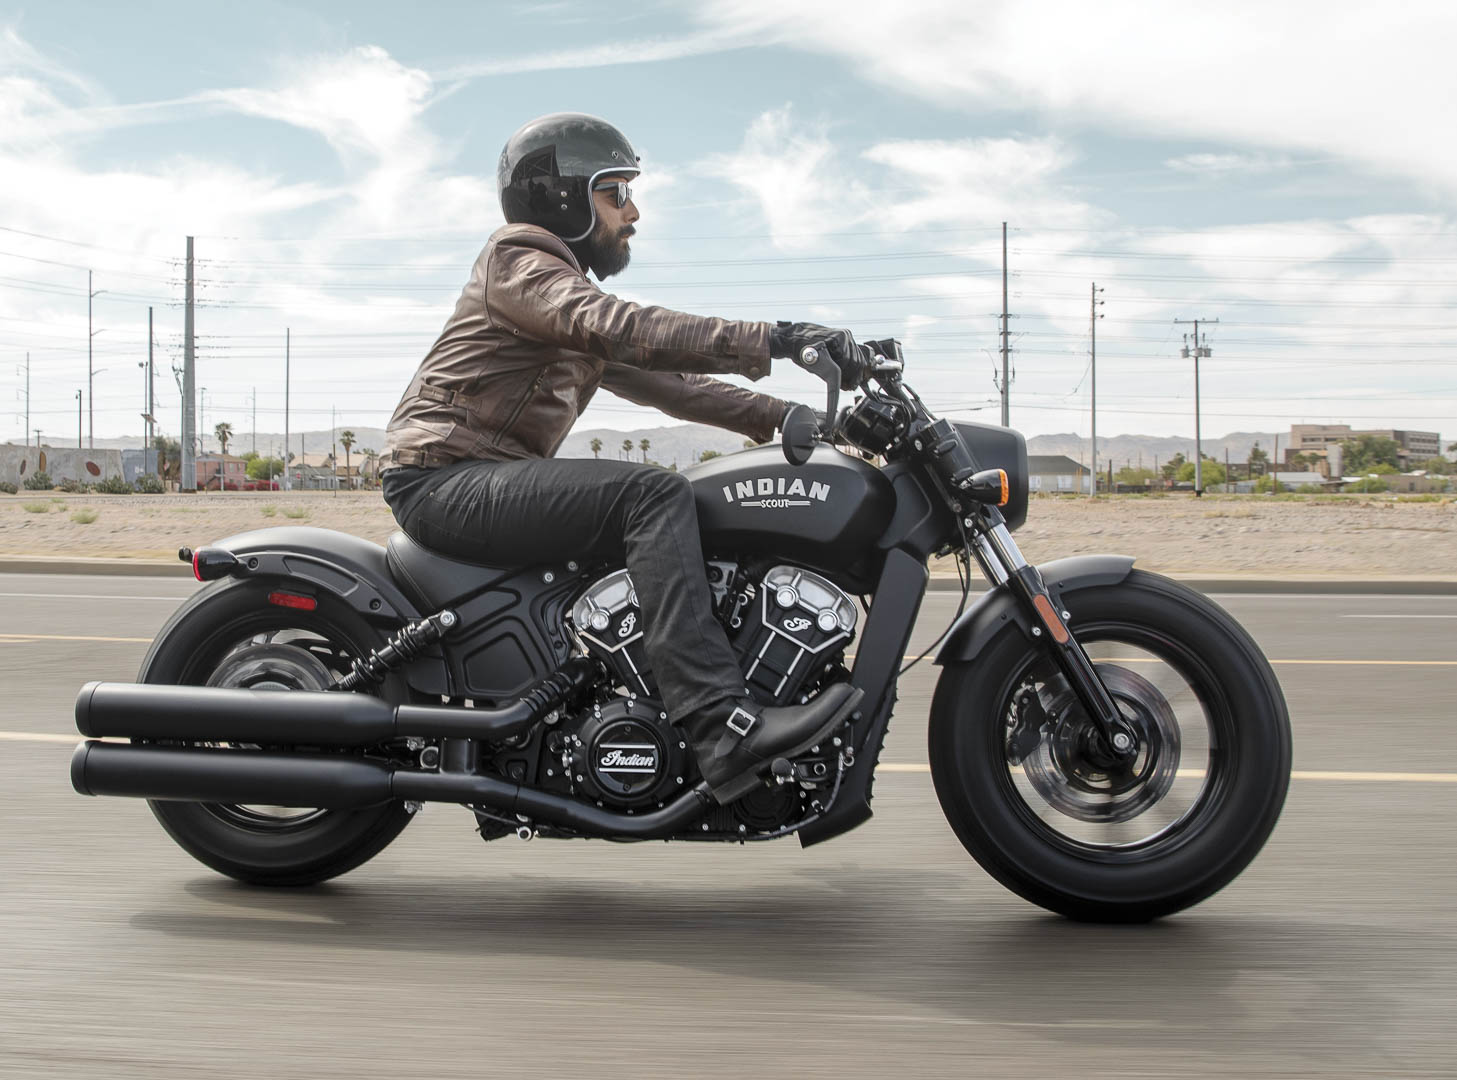 2020 Indian Scout Lineup First Look Prices Colors And Photos